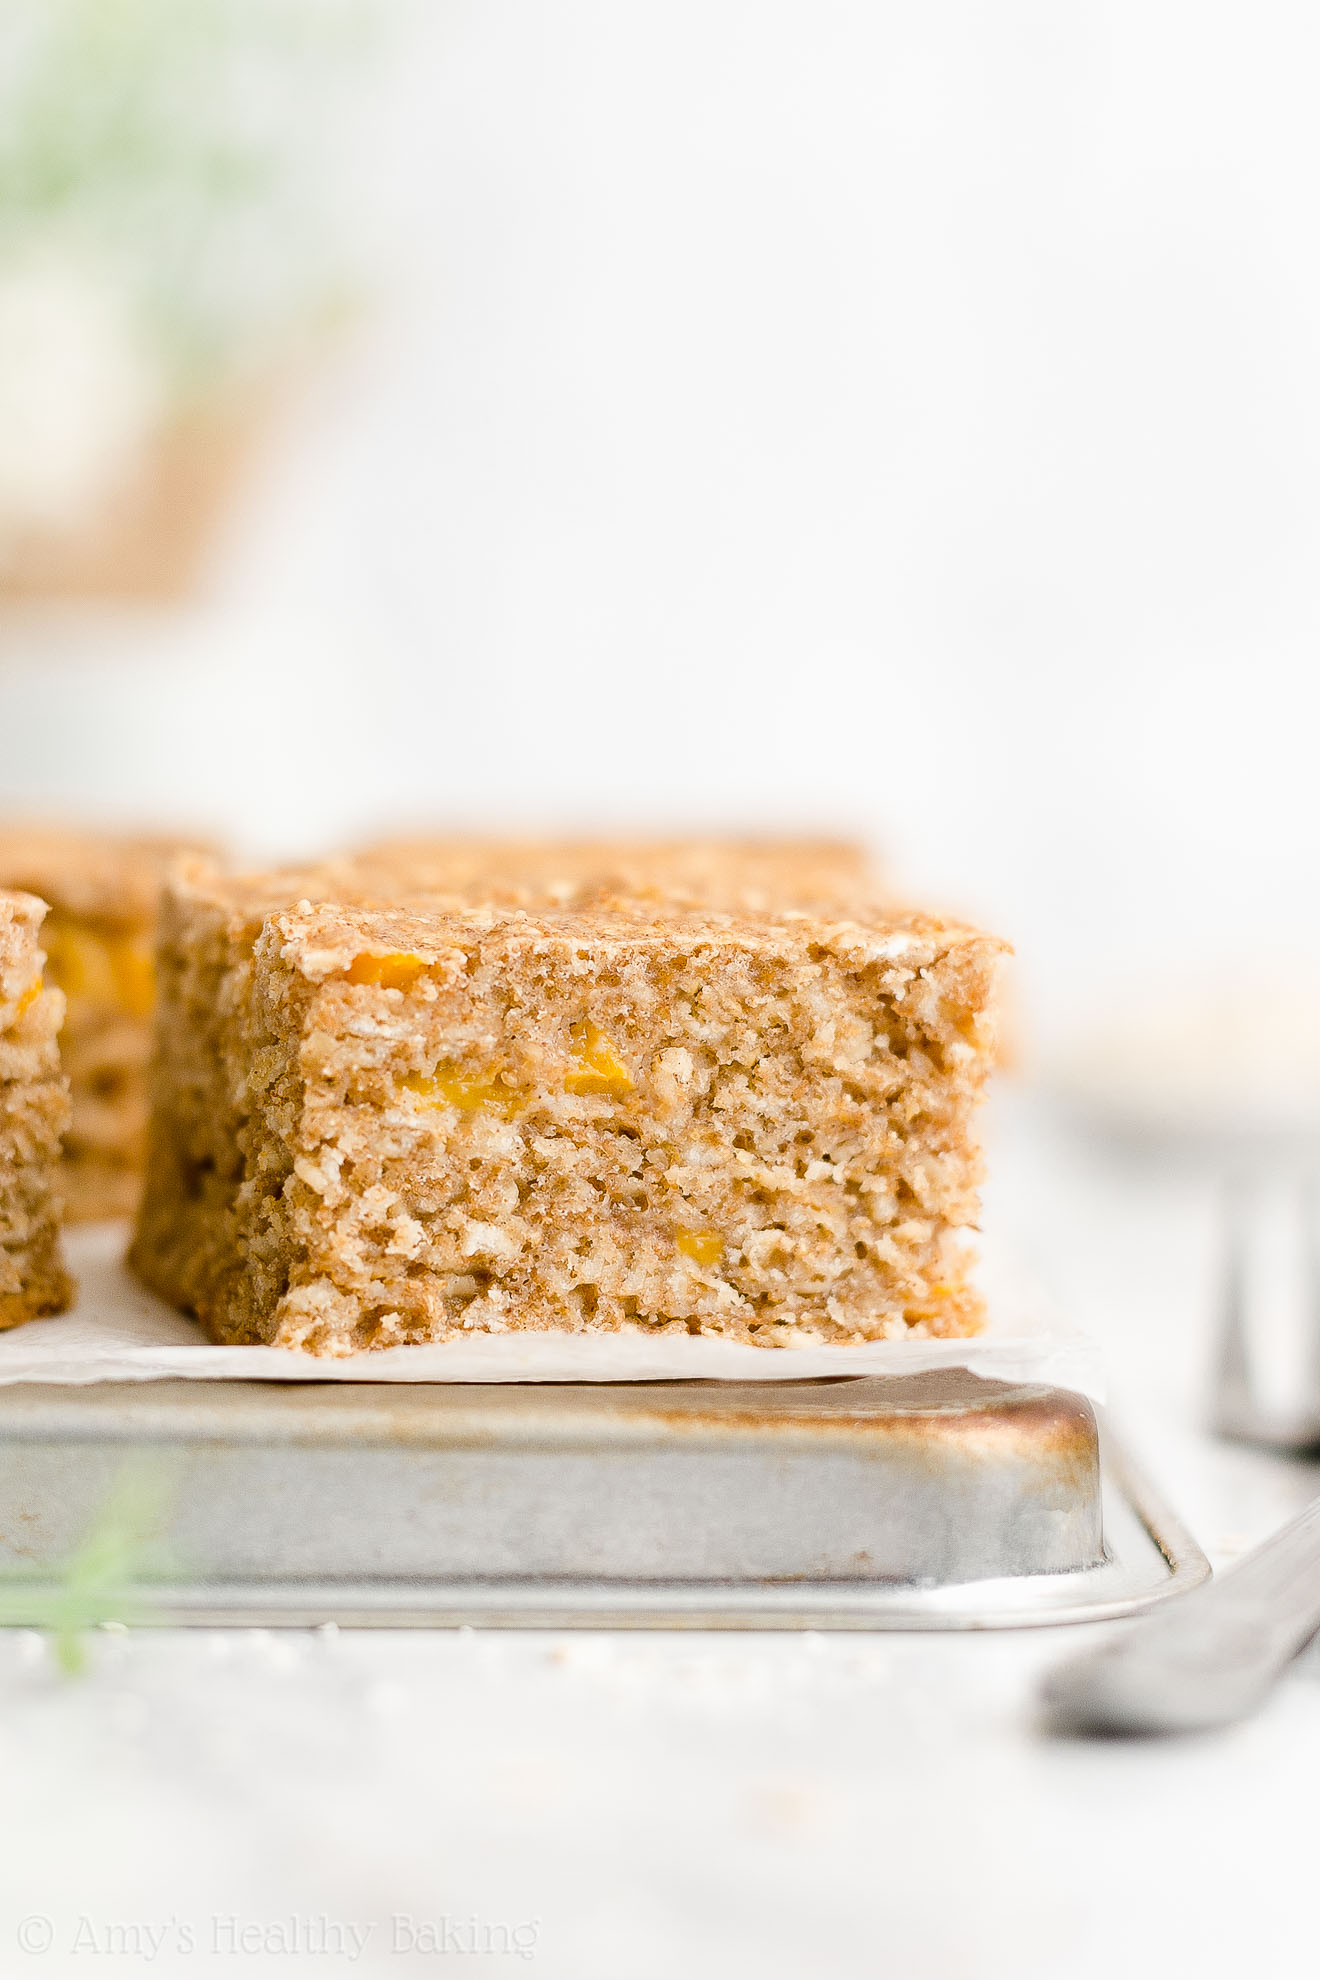 Easy Healthy Low Fat Whole Wheat Yogurt Canned Peach Oatmeal Breakfast Cake